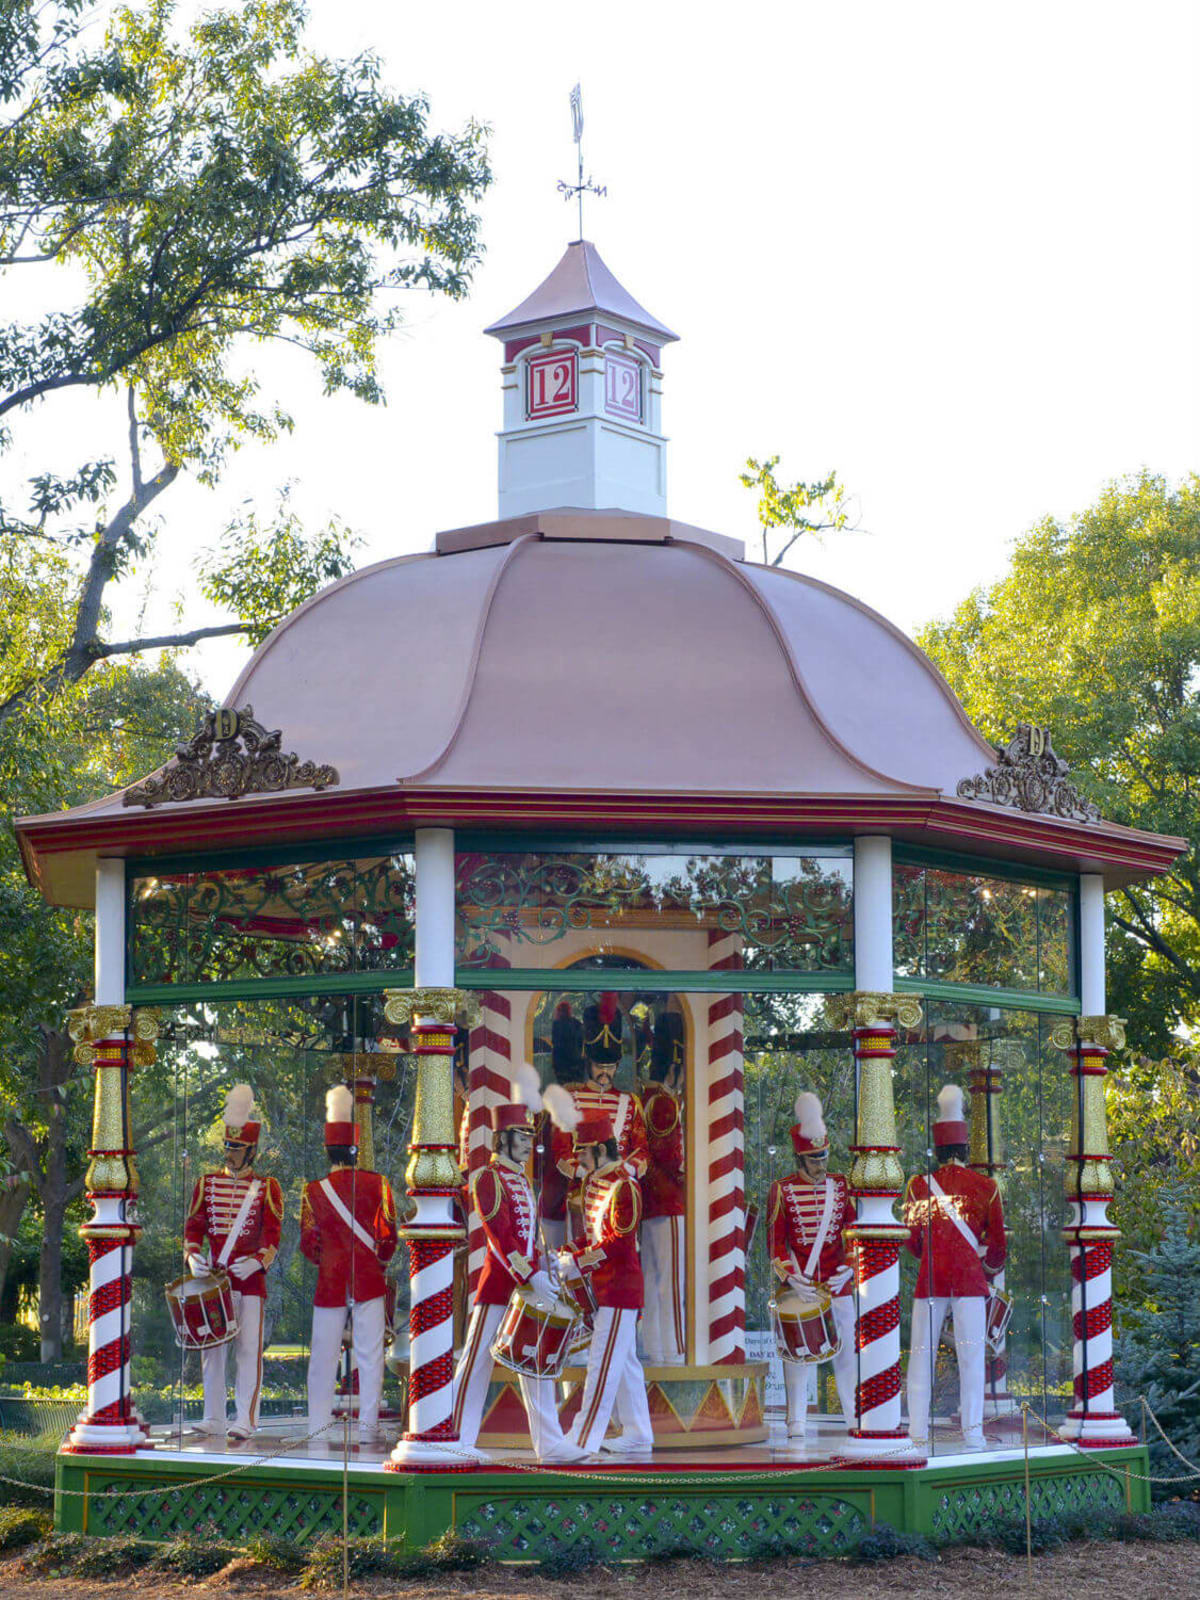 Dallas Arboretum presents 12 Days of Christmas